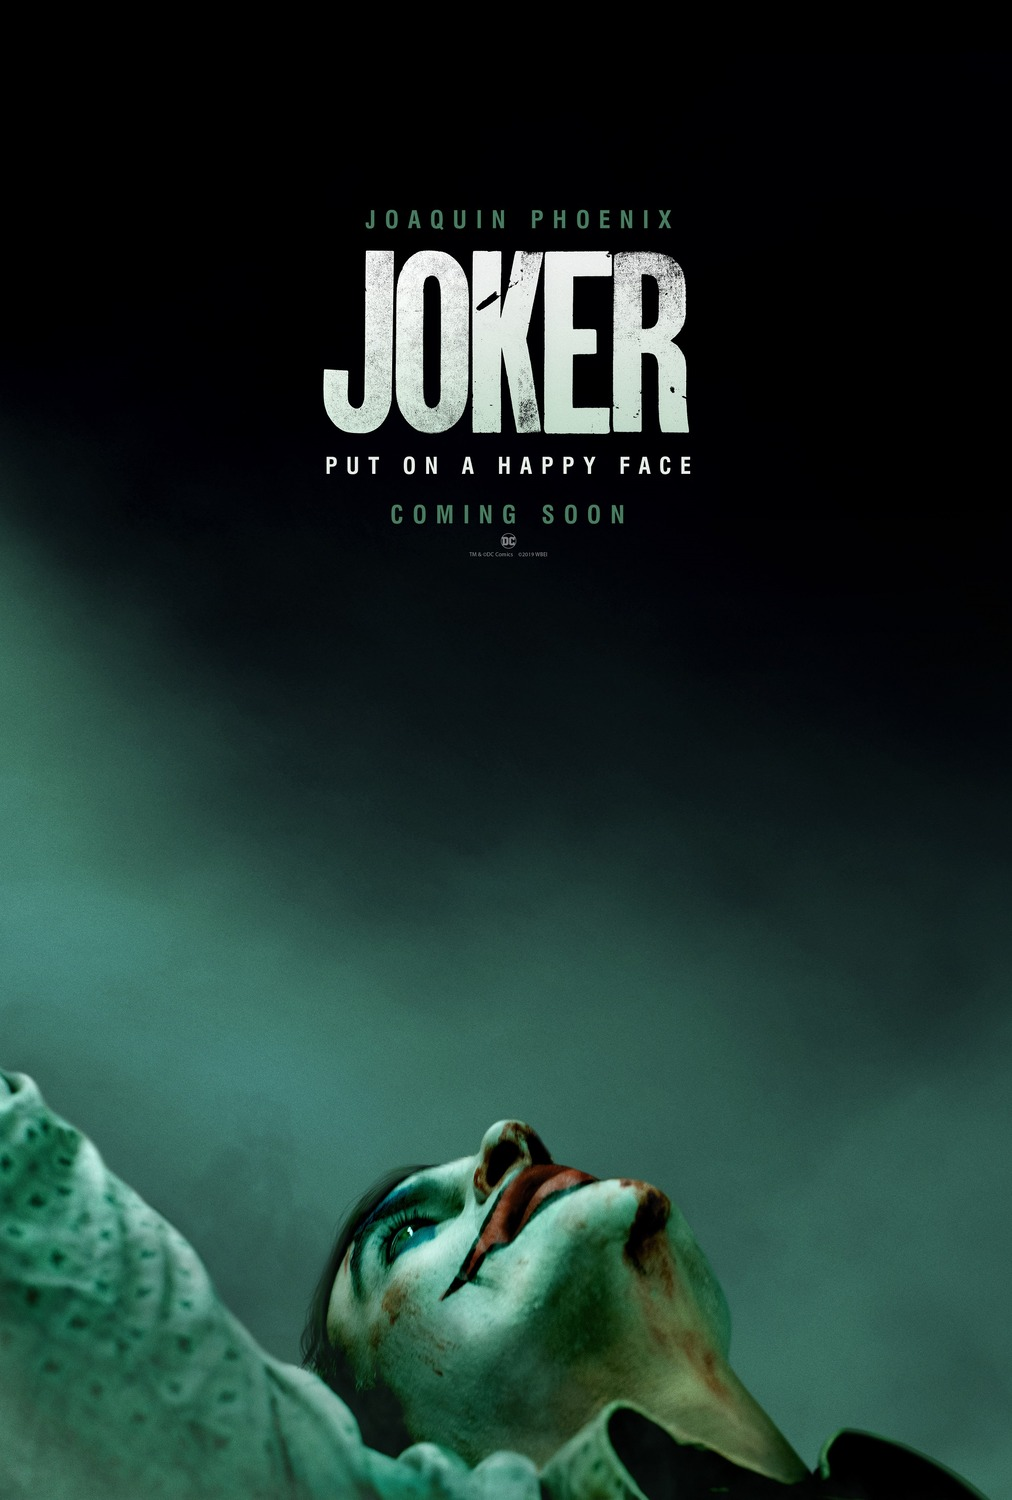 Extra Large Movie Poster Image for Joker (#1 of 11)